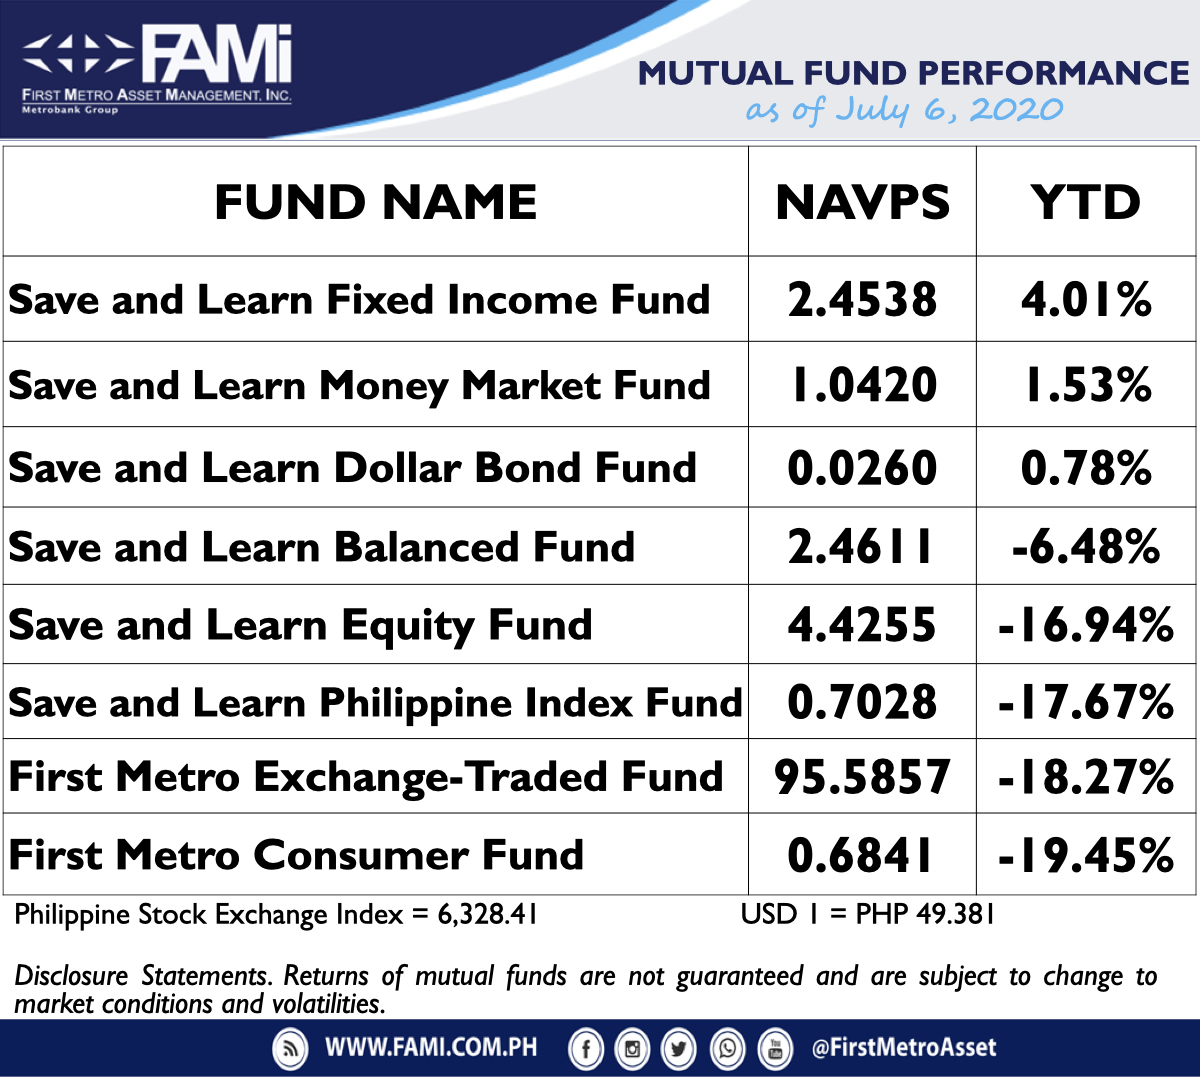 Here are our latest First Metro Asset Funds NAVPS as of July 6, 2020  #choosetoinvest #choosewisely #chooseFAMI https://t.co/6Y4p20hMxC